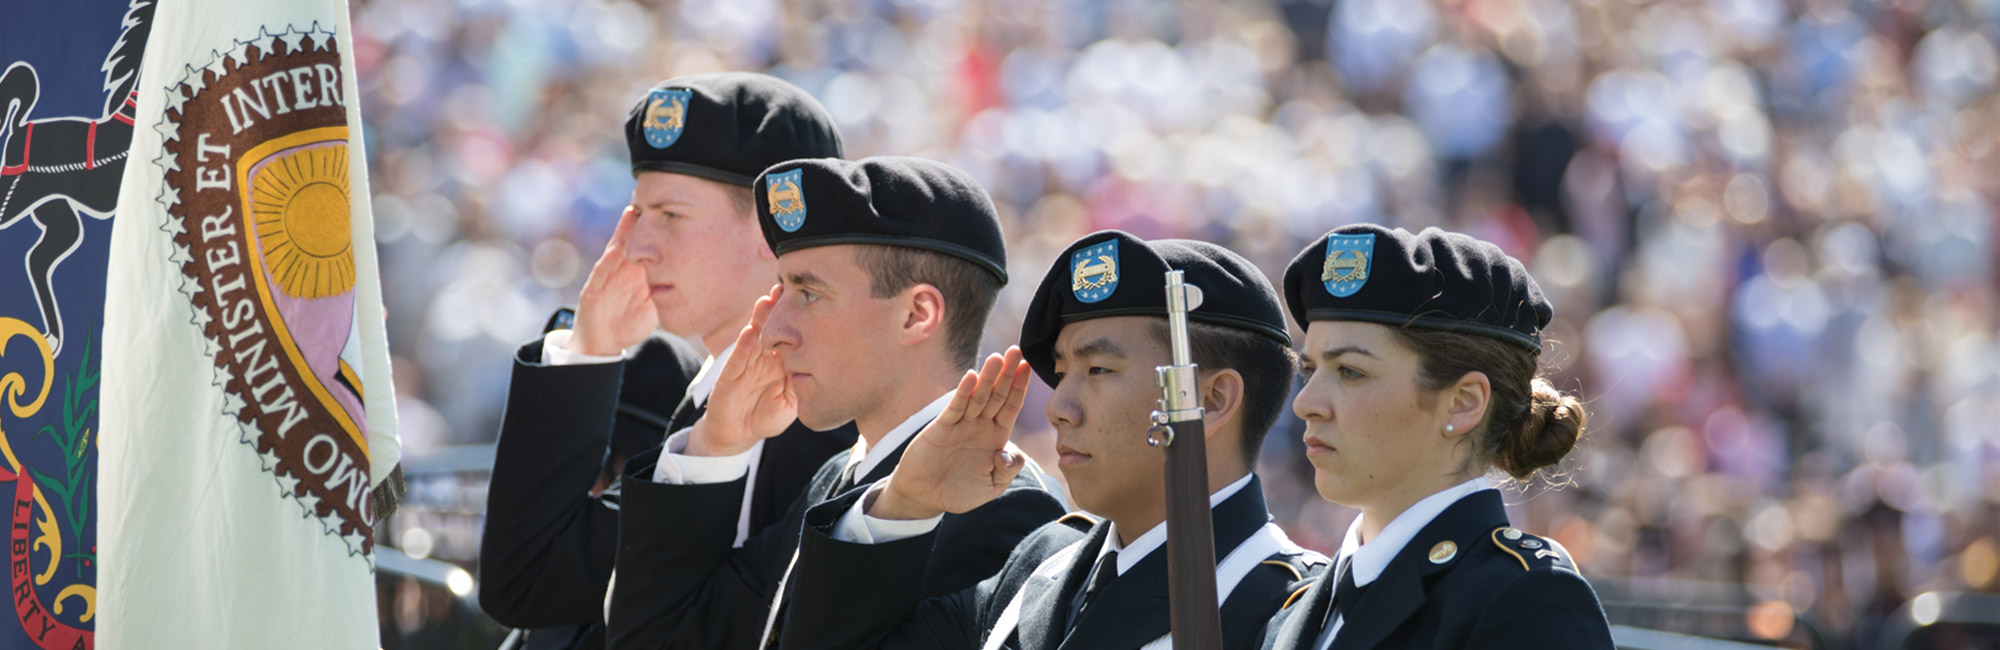 ROTC Lehigh Students Saluting